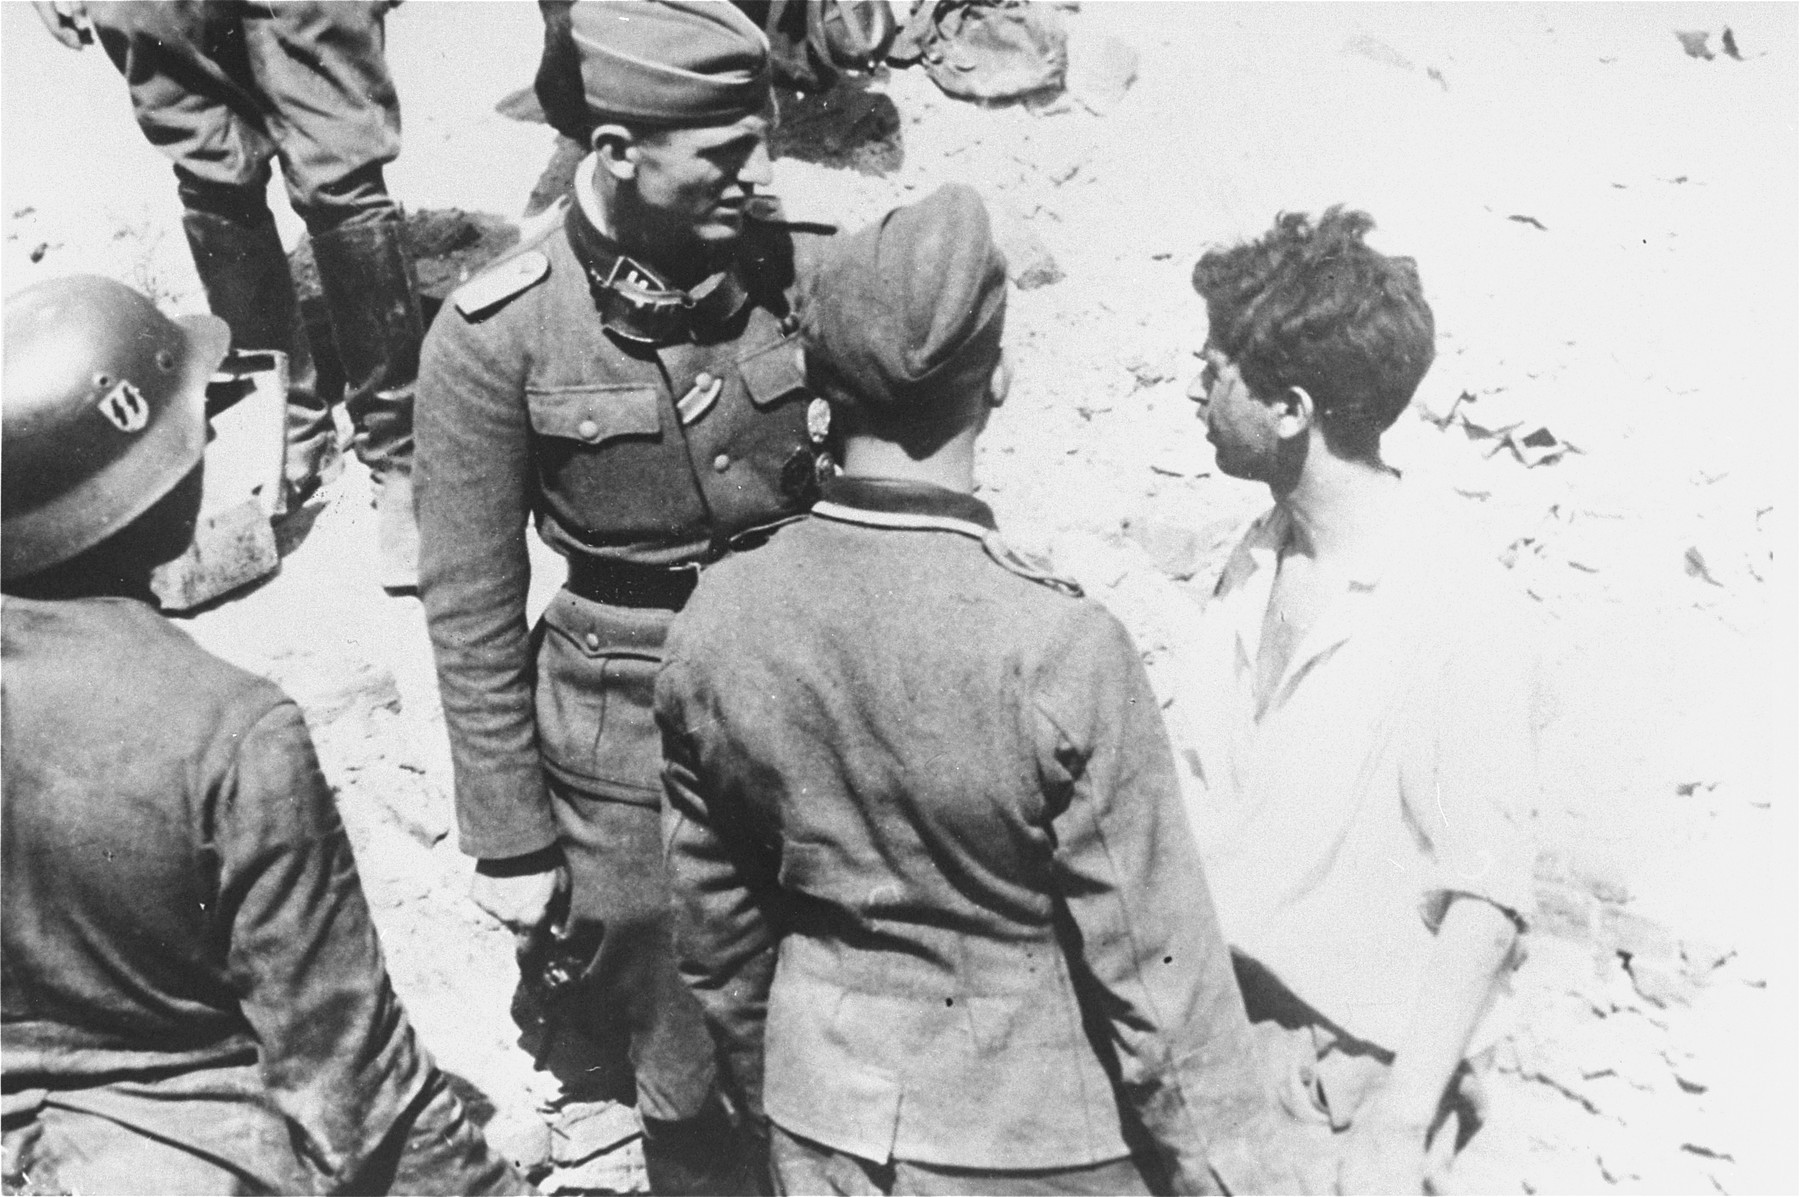 An SS Lieutenant (Untersturmfuehrer) interrogates a Jewish resistance fighter captured on the twenty-first day of the suppression of the Warsaw ghetto uprising.